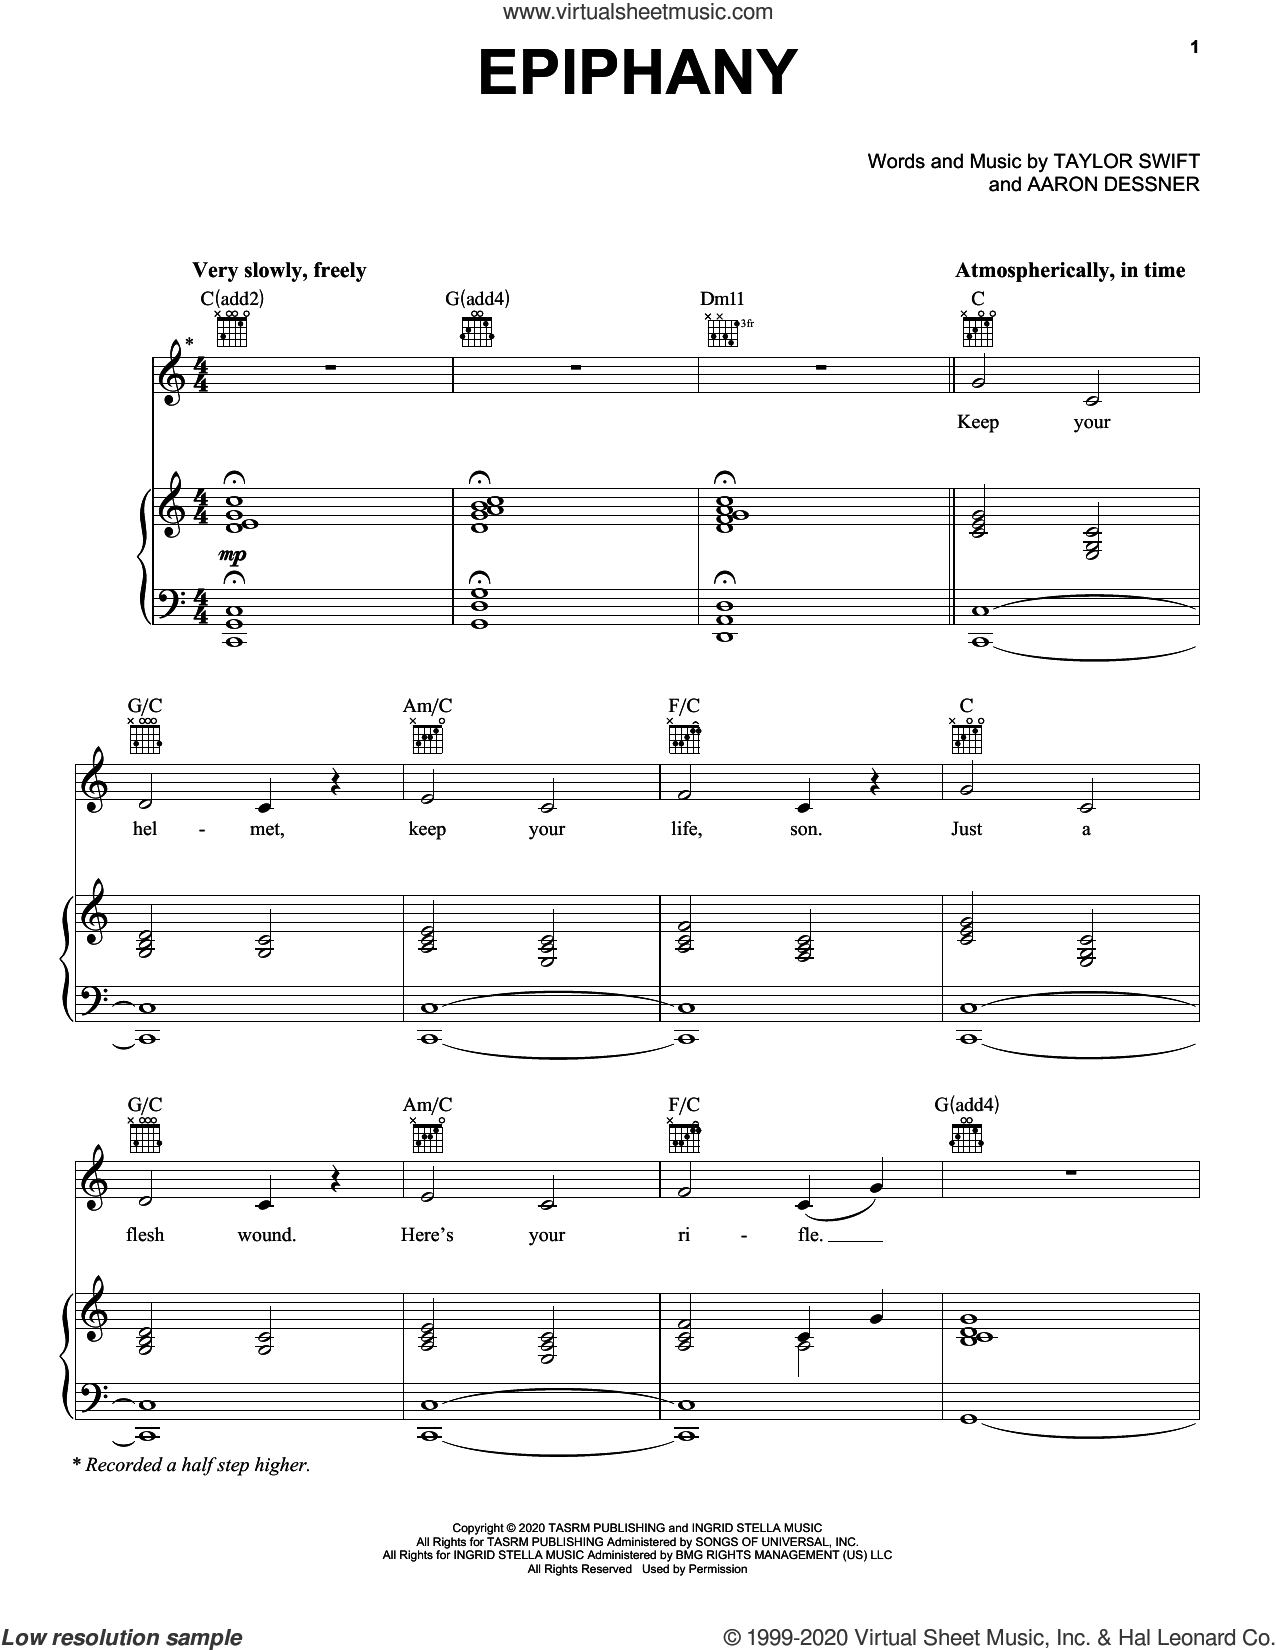 epiphany sheet music for voice, piano or guitar by Taylor Swift and Aaron Dessner, intermediate skill level